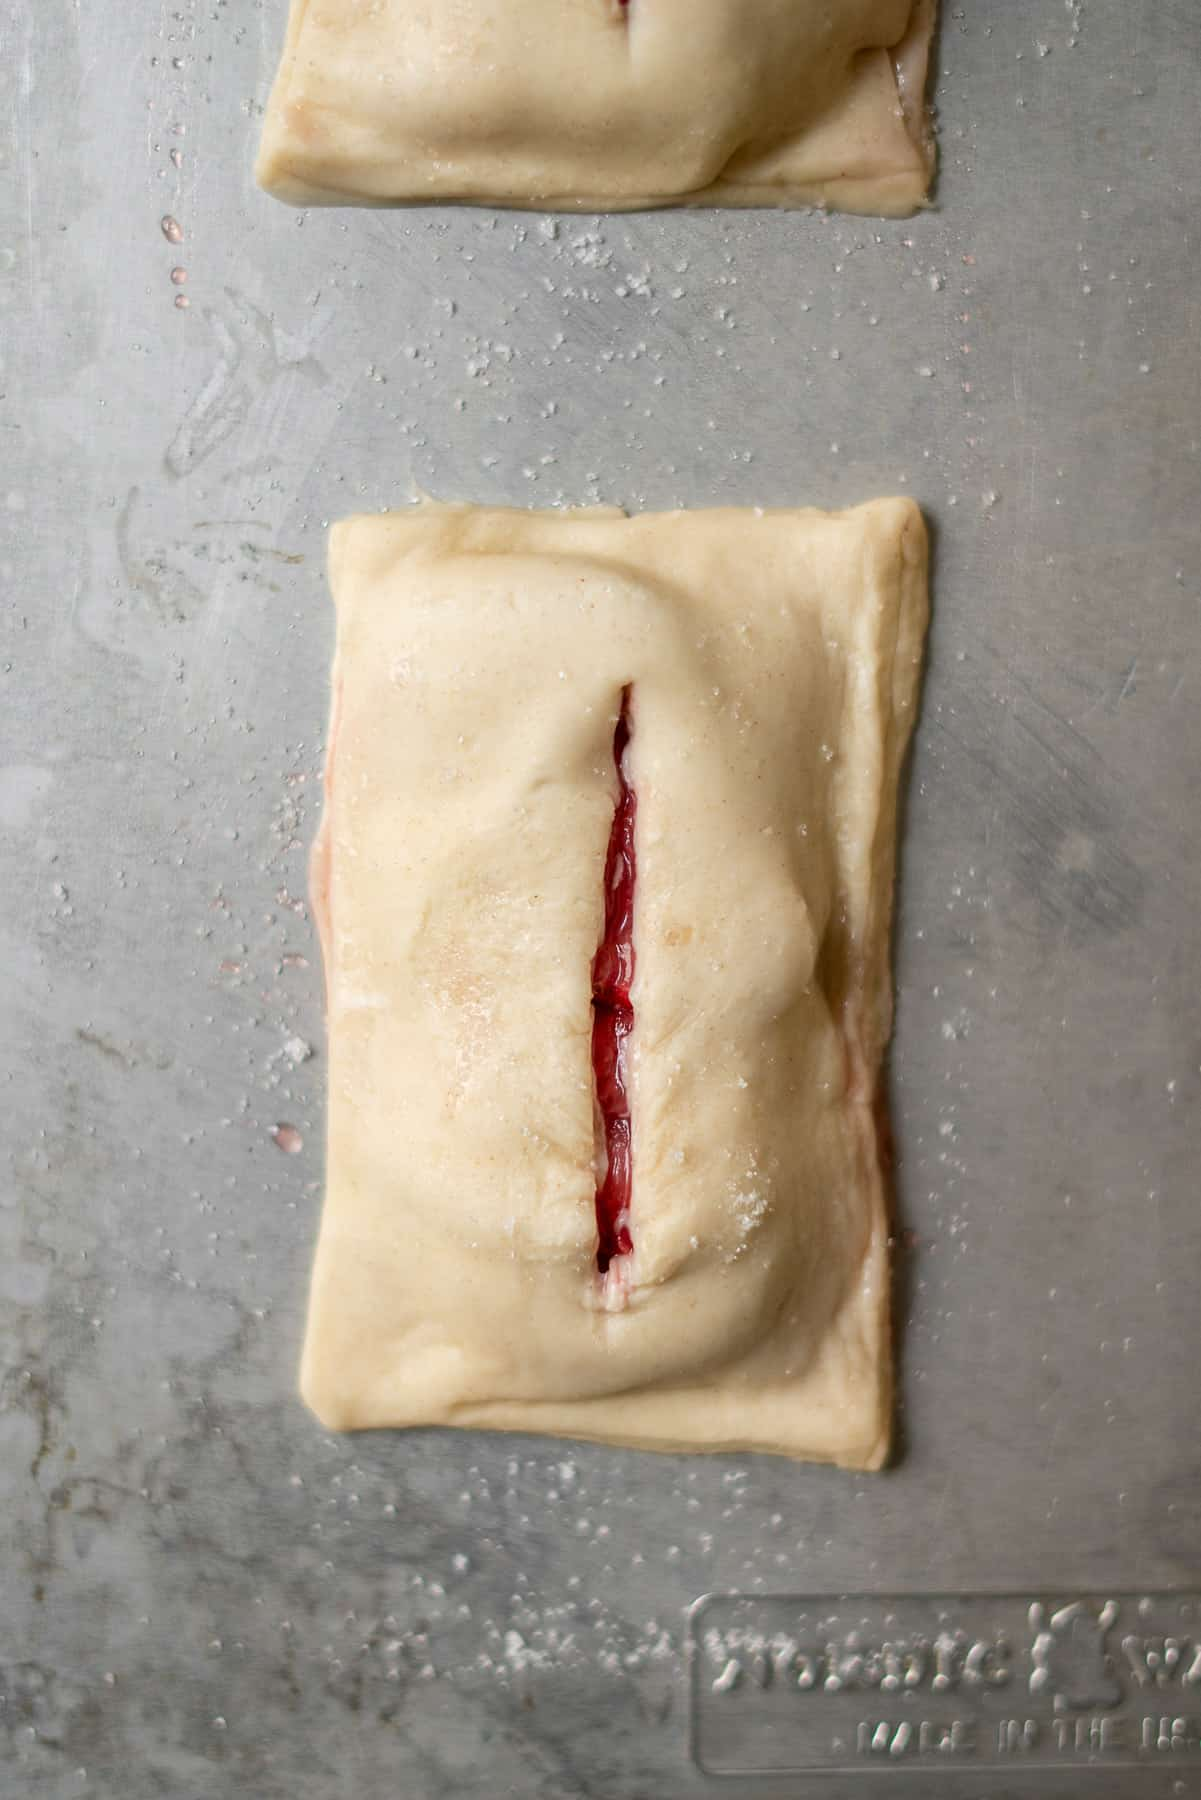 puff pastry sealed with a top layer with a slit down the middle revealing strawberries